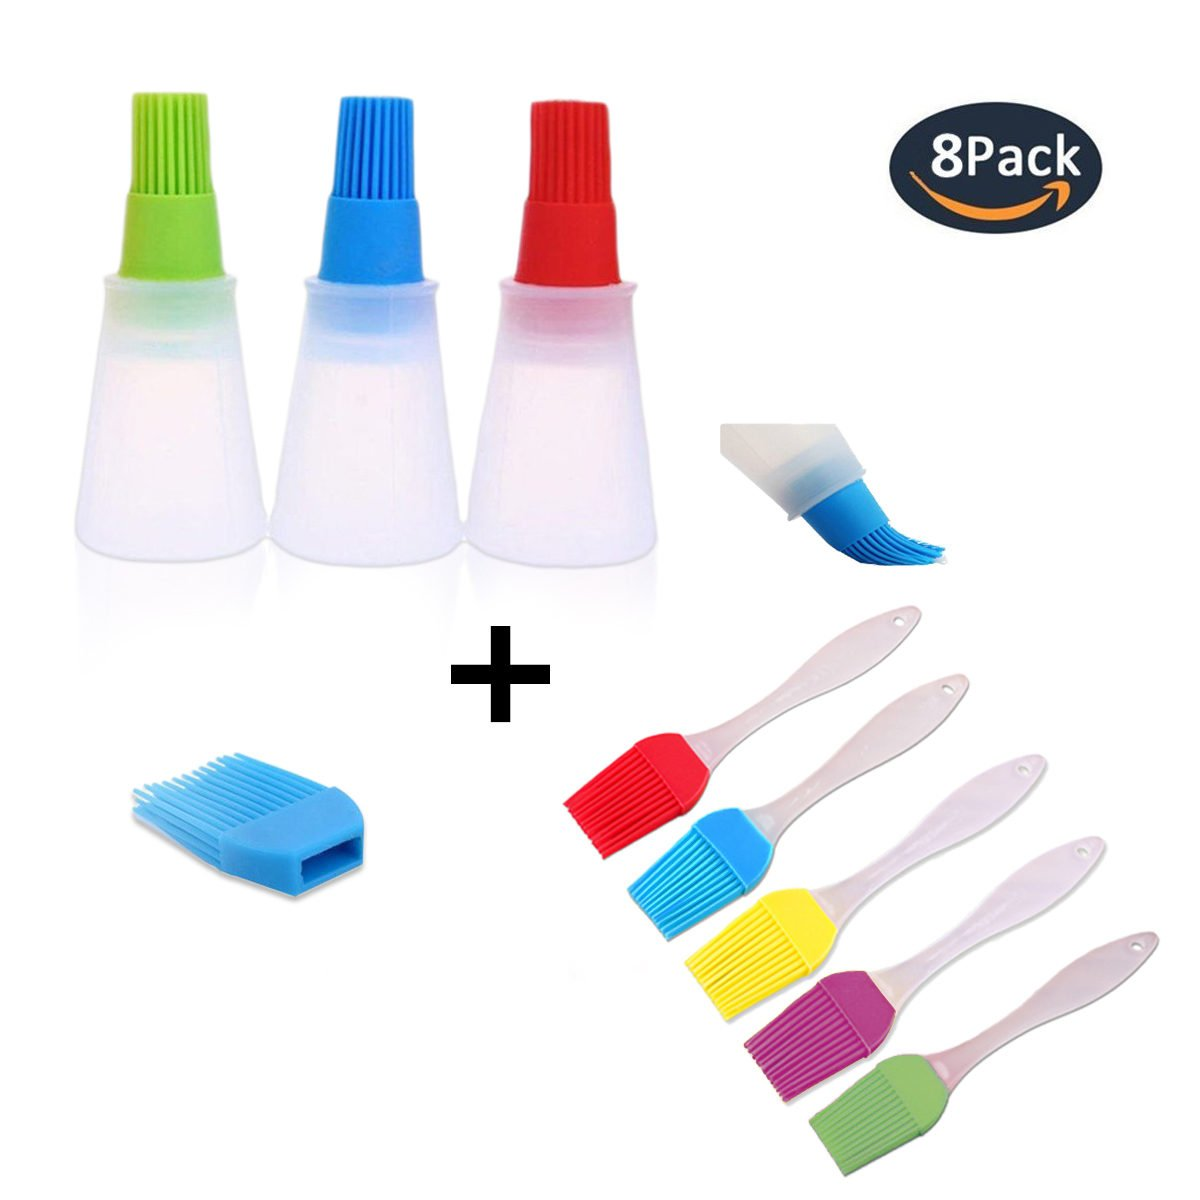 Set of 8 Silicone BBQ Basting Brush and Sauce and Oil Bottle Sets,Pastry,Turkey Baster Oil Brush,Heat Resistant For Kitchen Cooking Grilling, Dishwasher Safe,Easy Clean Kitchen Tools Barbecue